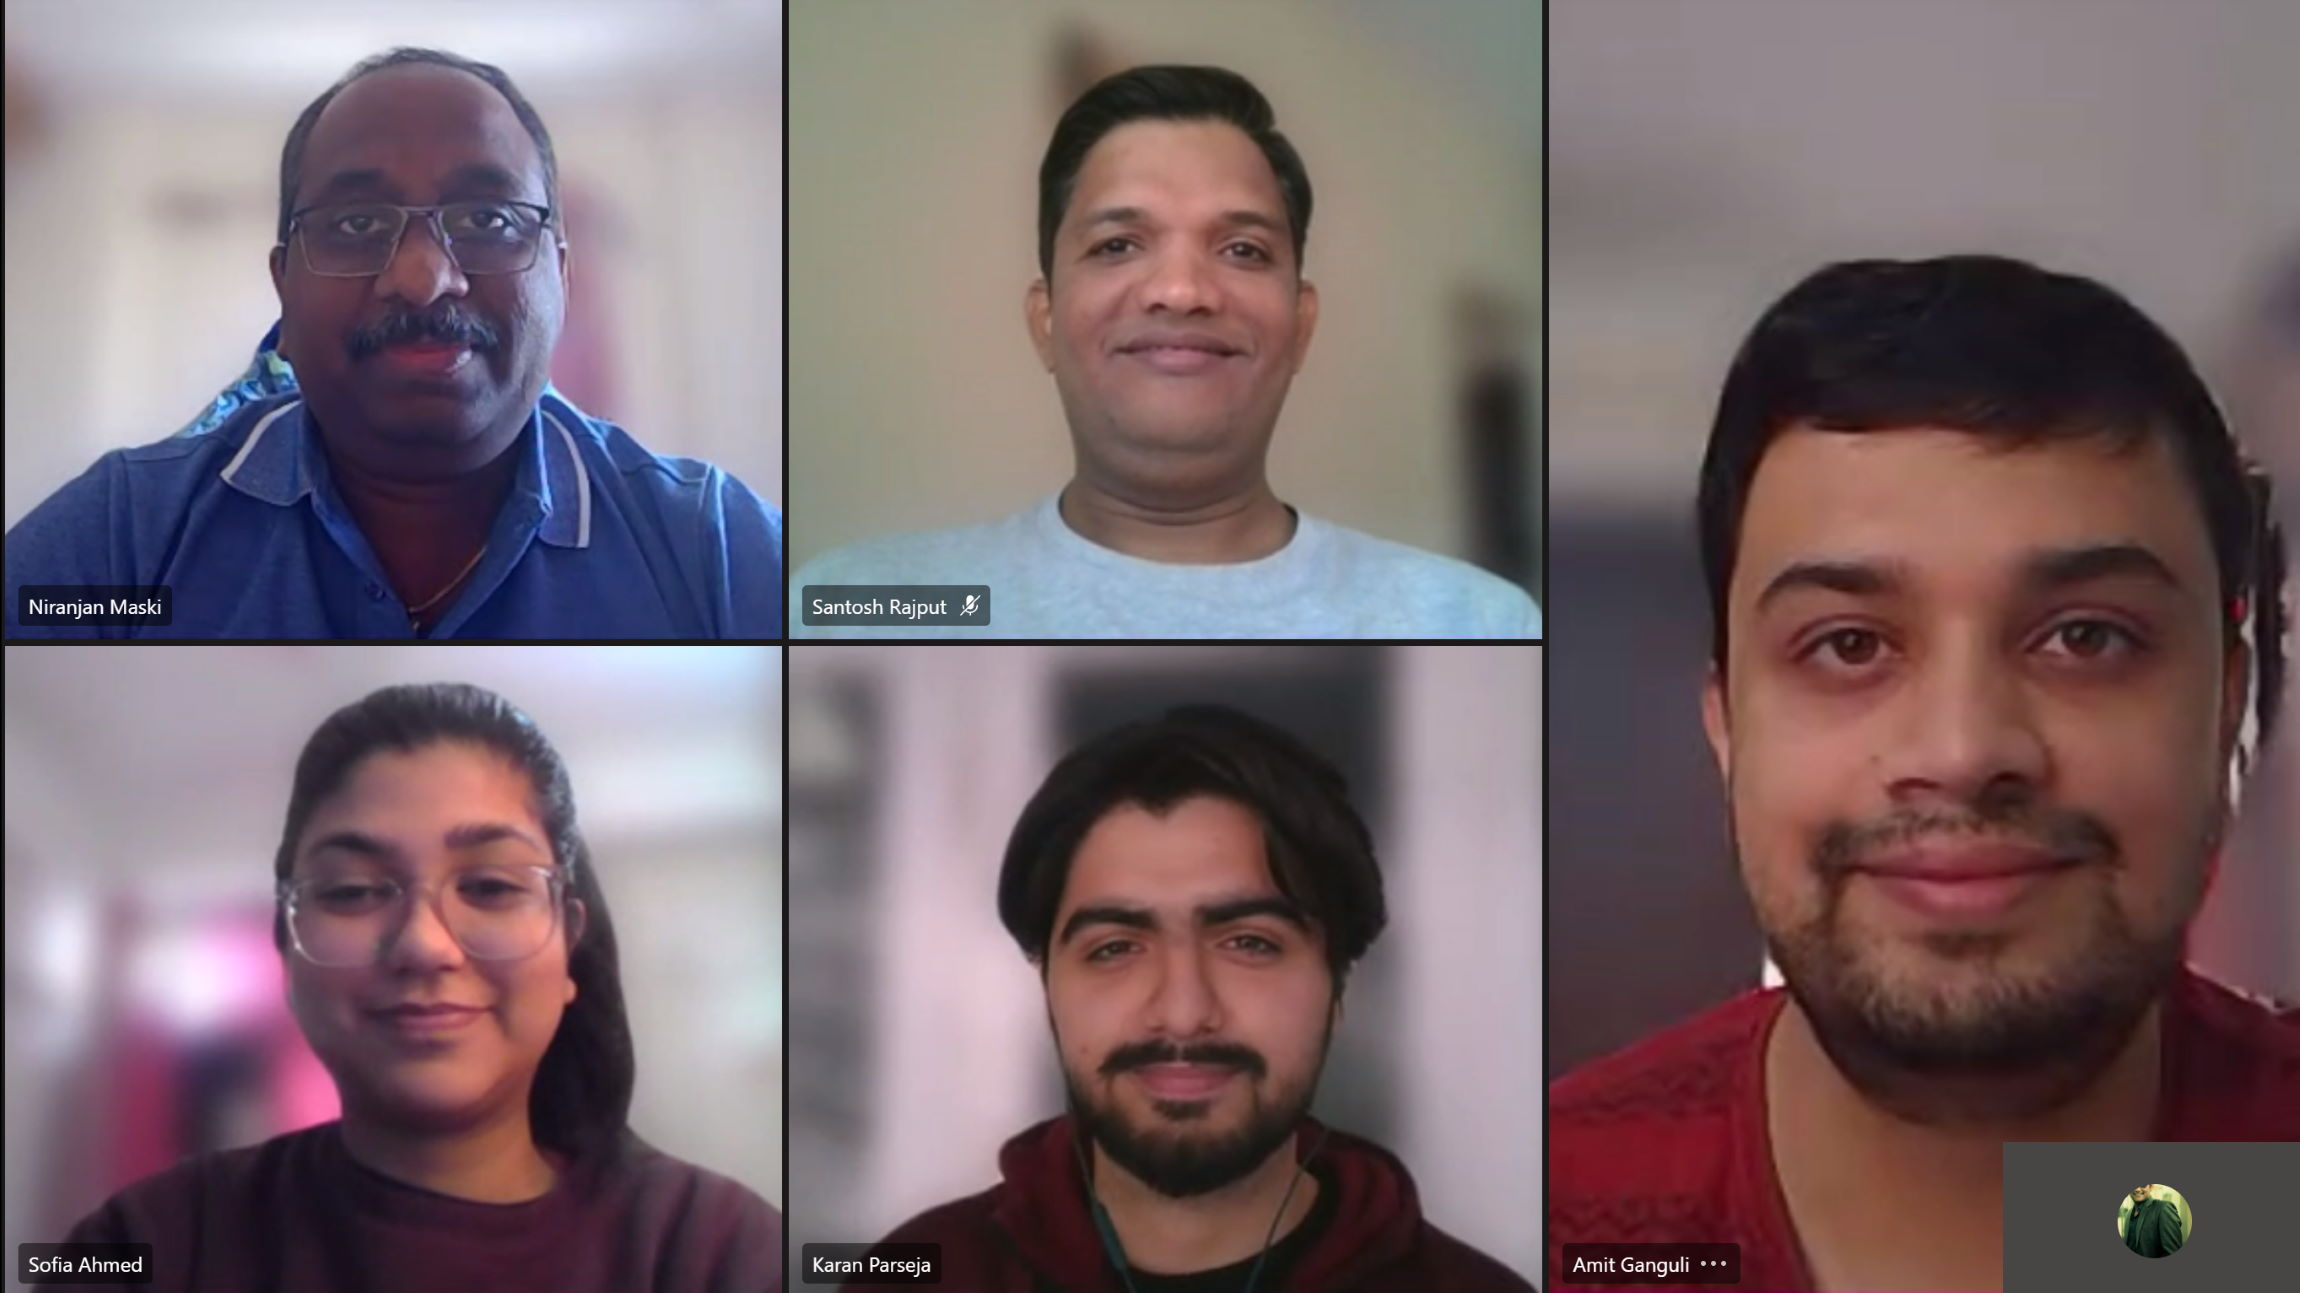 A photo shows the faces of the different team members who worked on the new SAP application: Maski, Rajput, Ganguli, Parseja, and Ahmed.